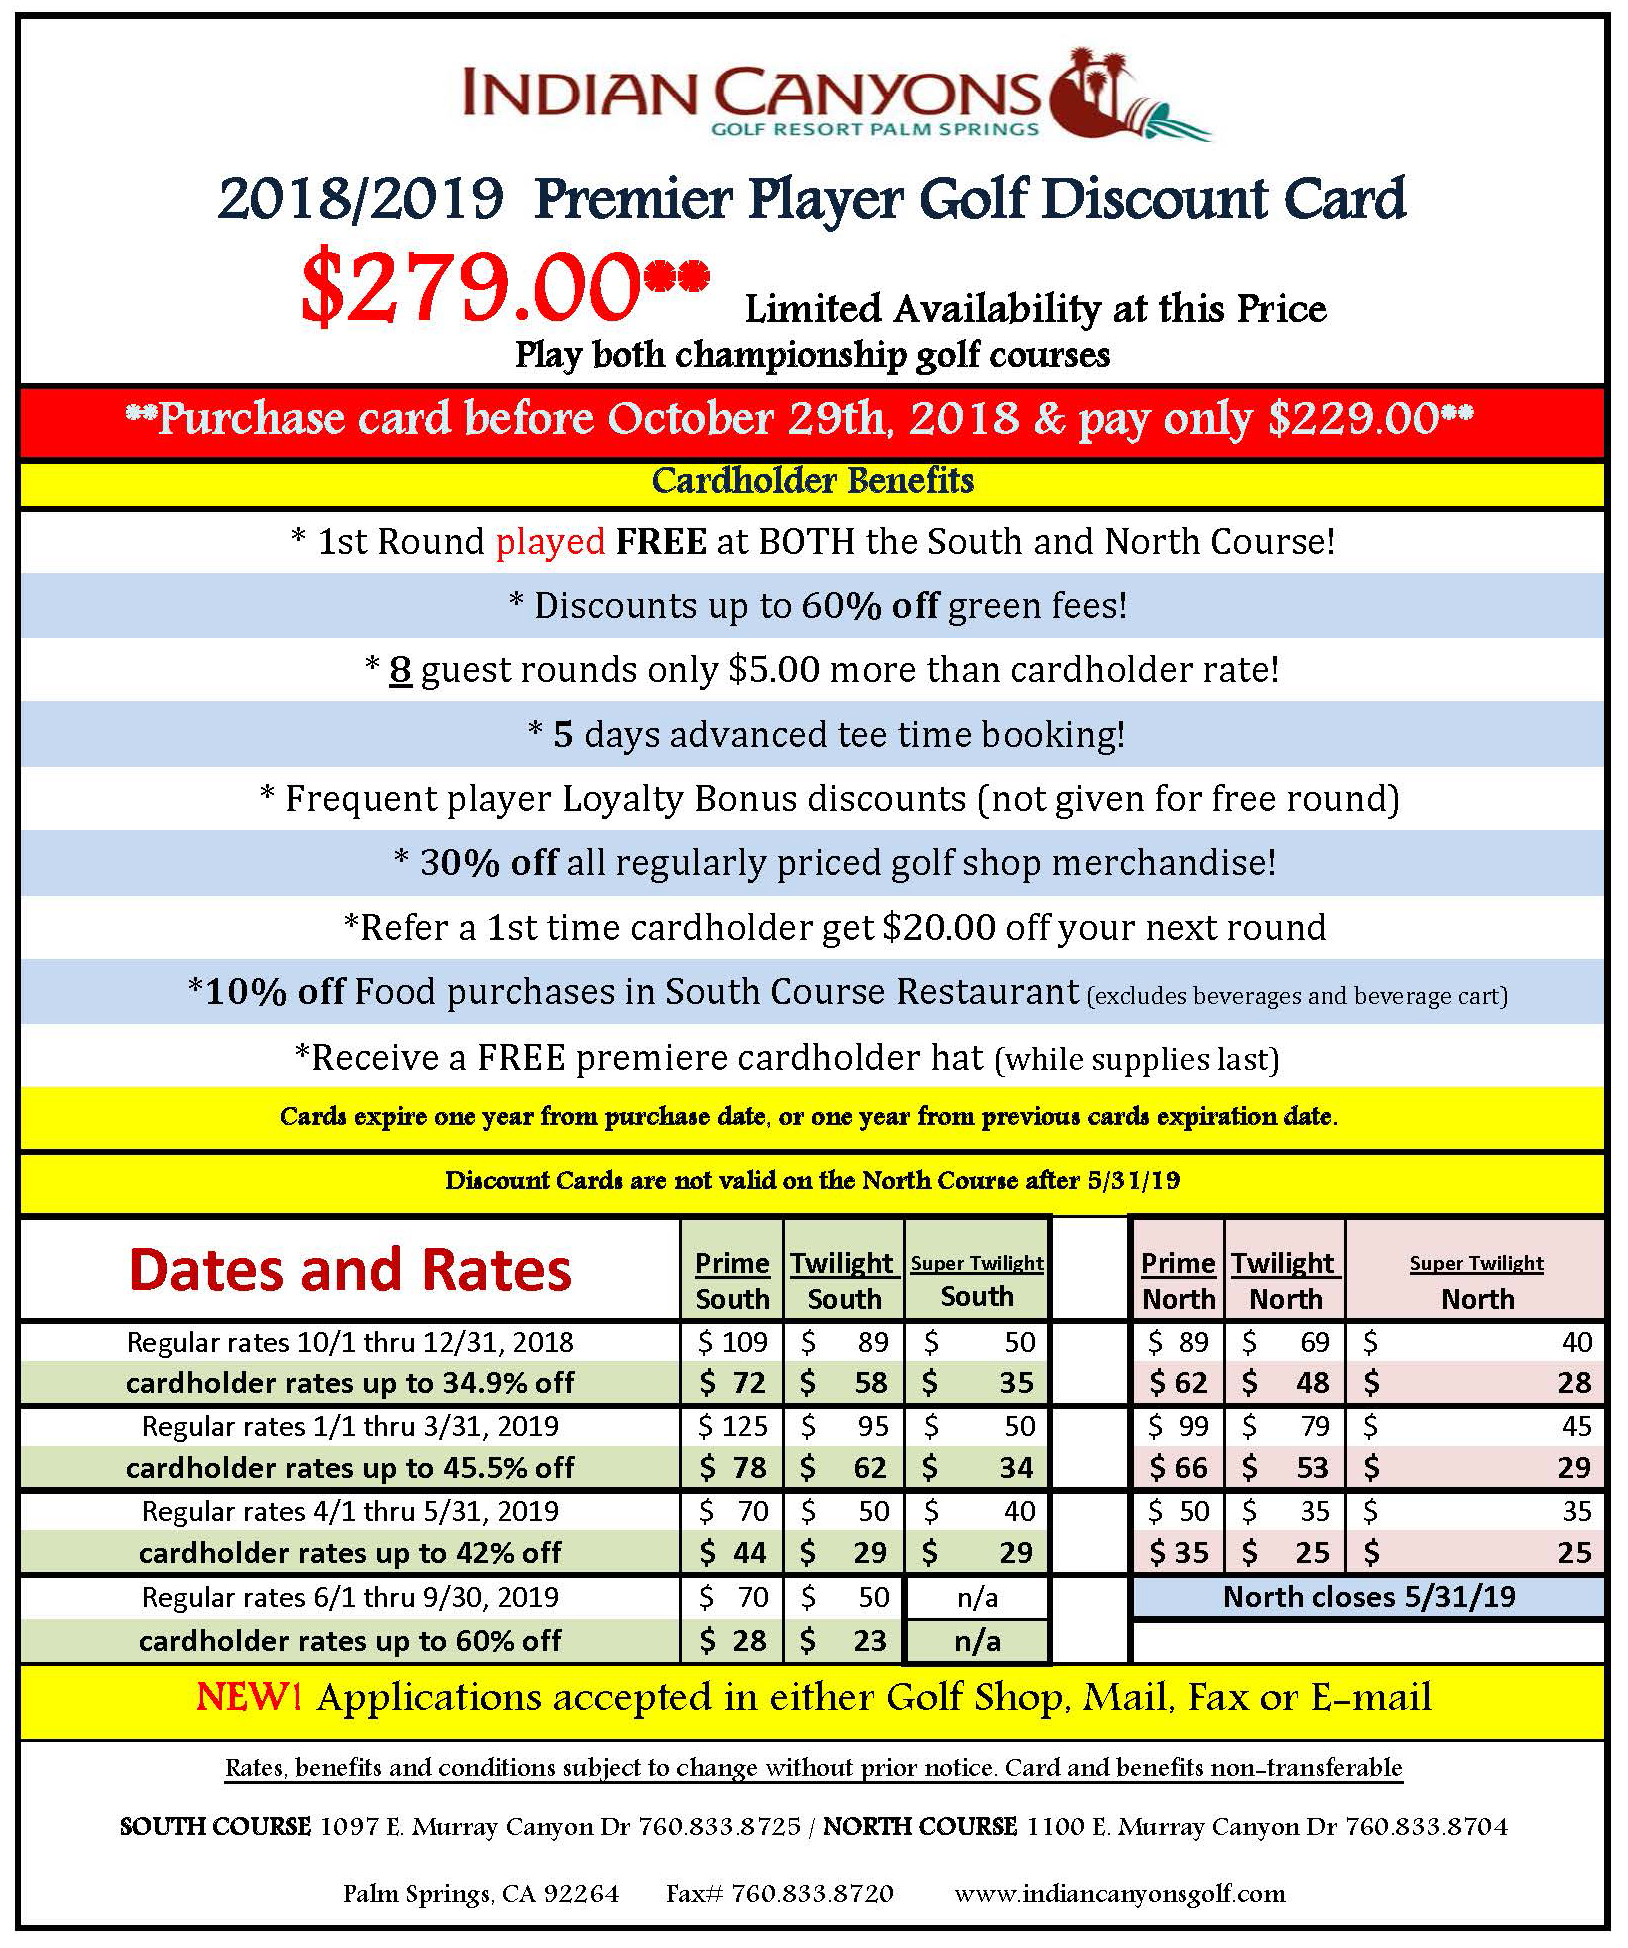 Premier Player Golf Discount Card